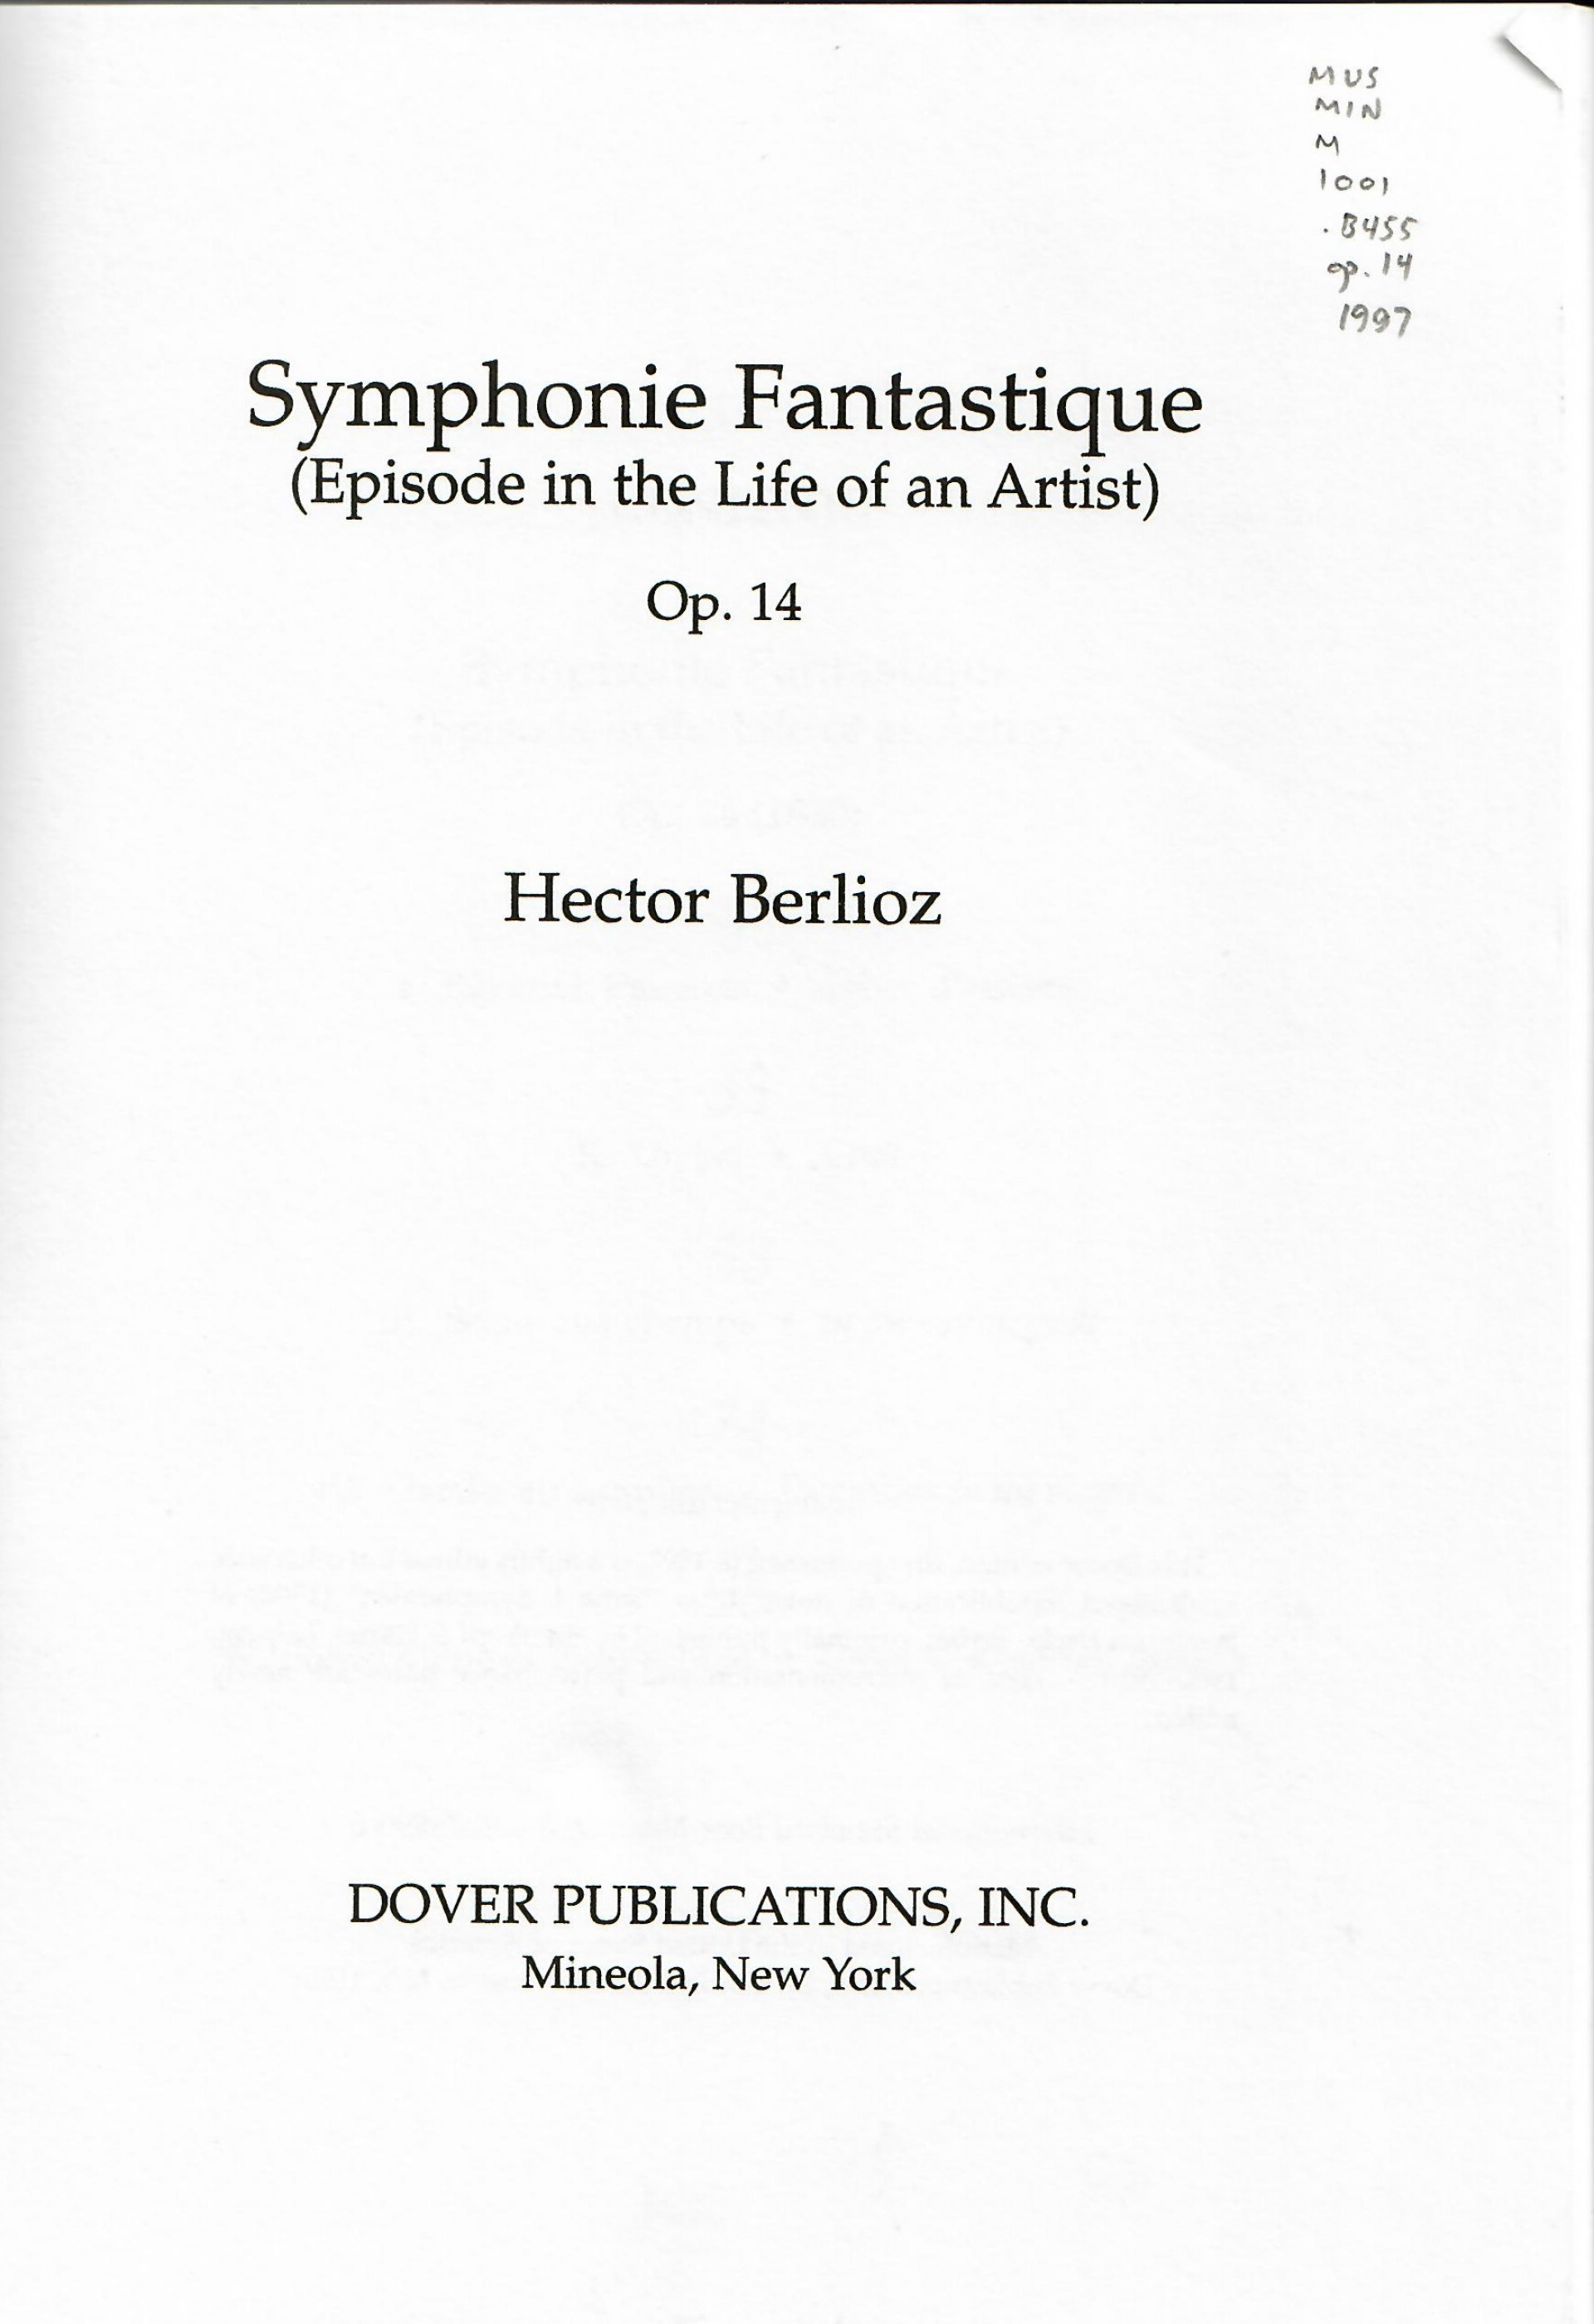 022 Symphonie Fantastique Cover Page Research Paper Staggering Citing Apa Citation Generator Online Citations 1920